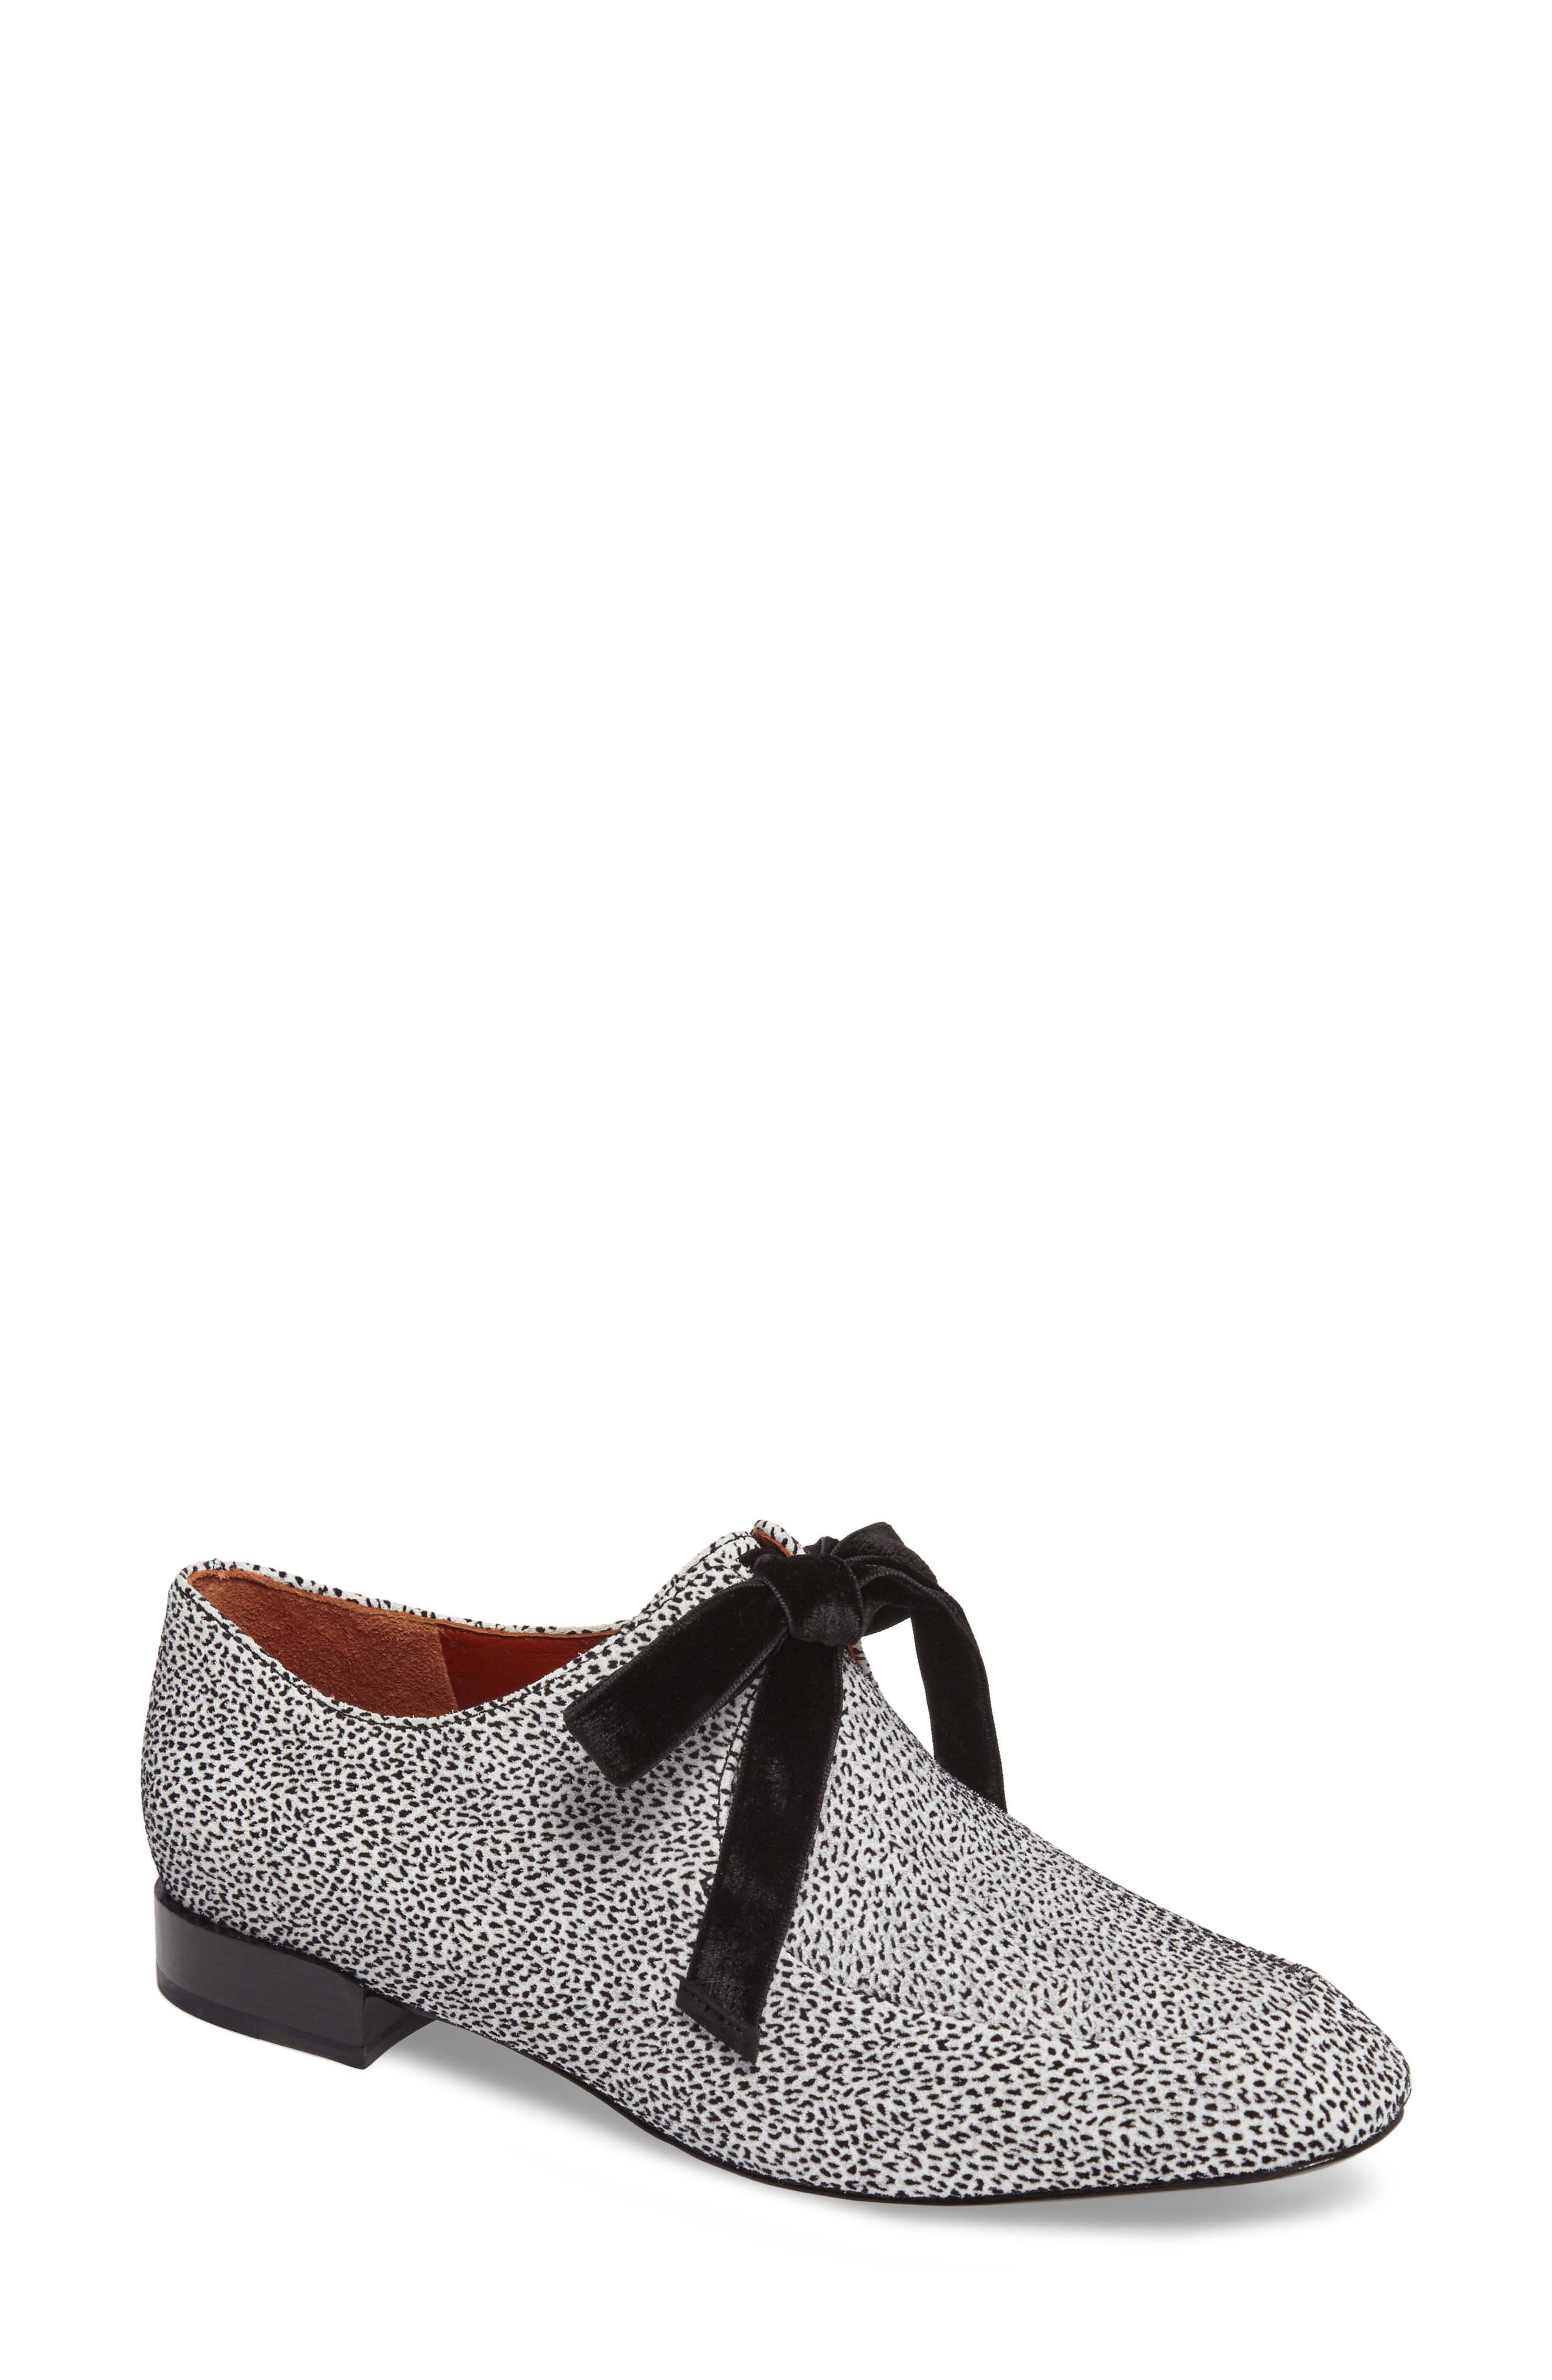 3.1 Philip Lim Velvet Bow Loafer (Women)